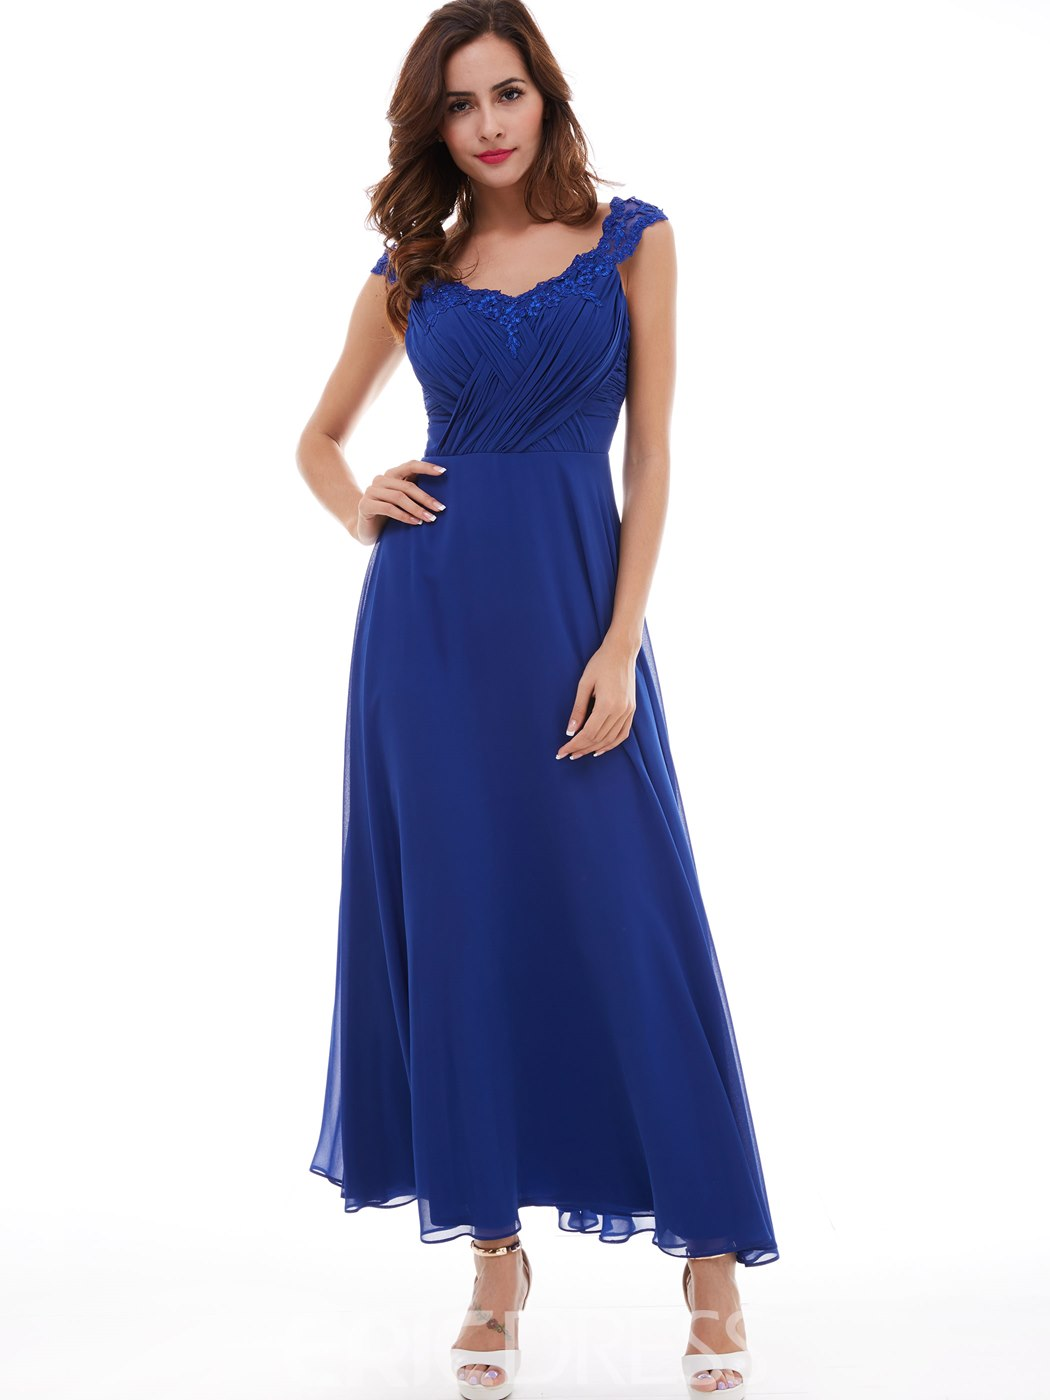 Ericdress A Line Cap Sleeve Pleated Appliques Lace Chiffon Evening Dress